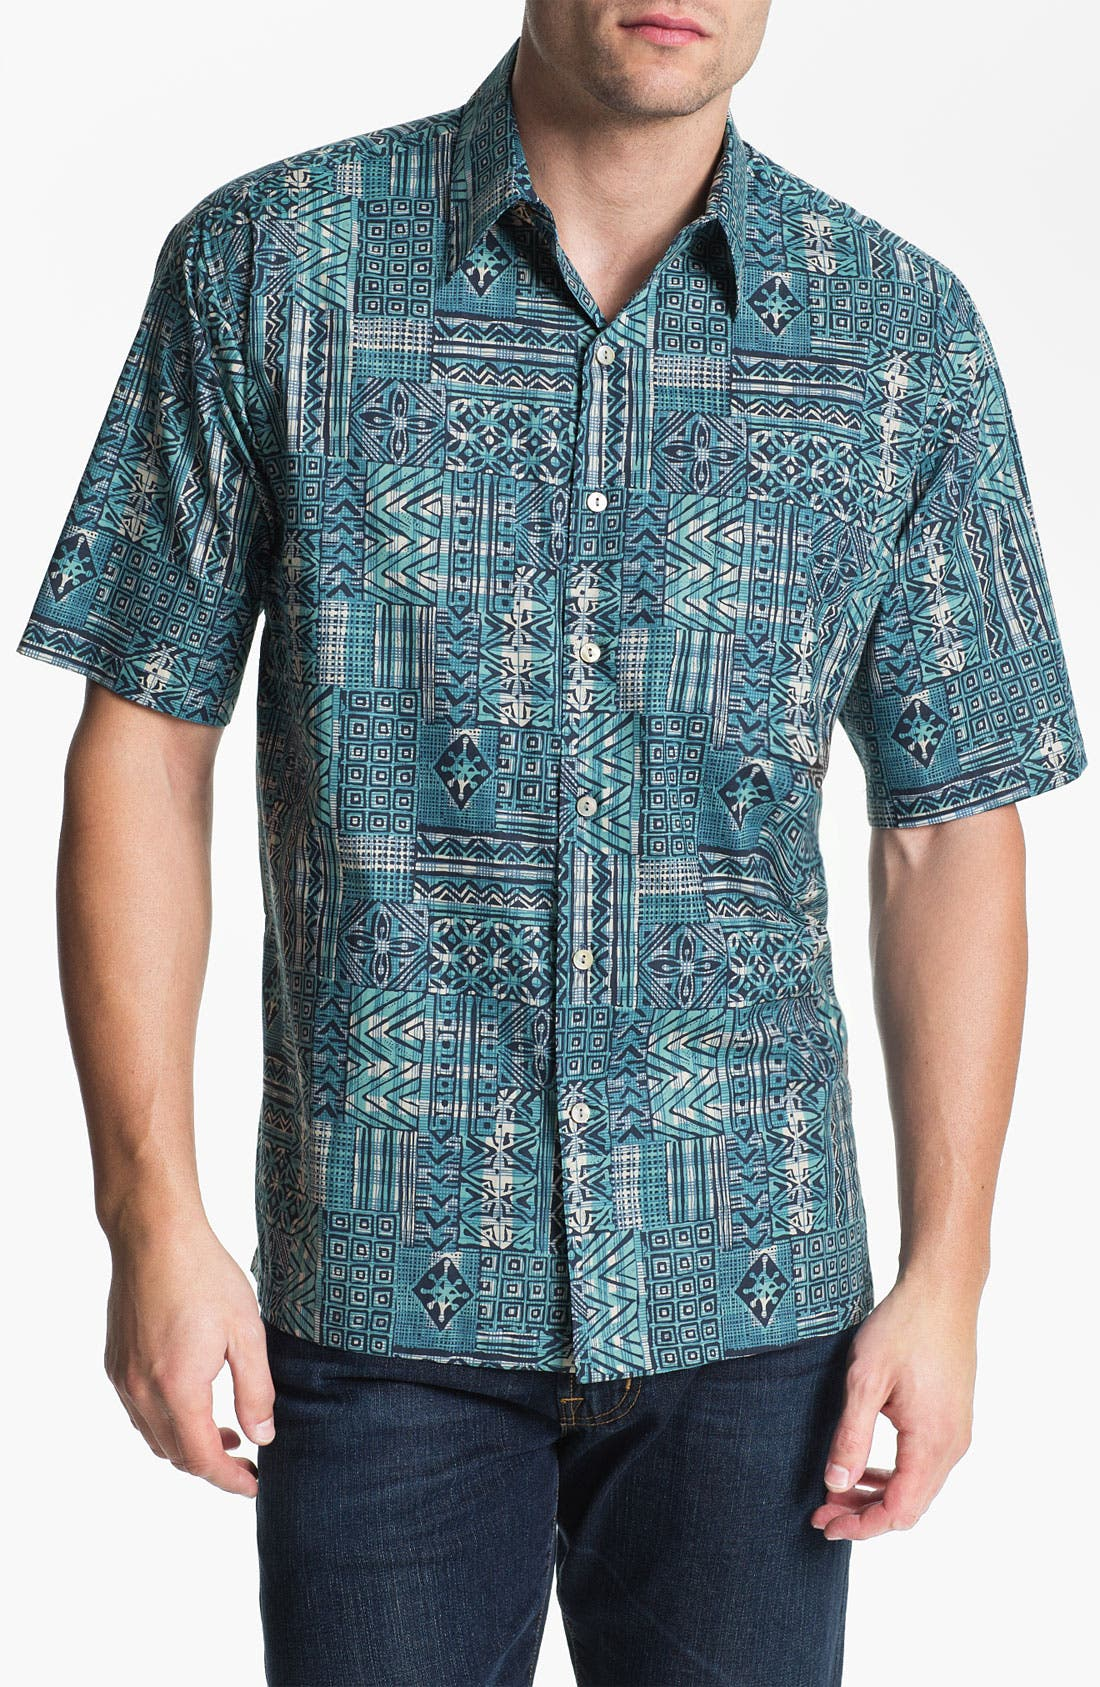 Main Image - Tori Richard 'Gridlock' Cotton Campshirt (Big & Tall)